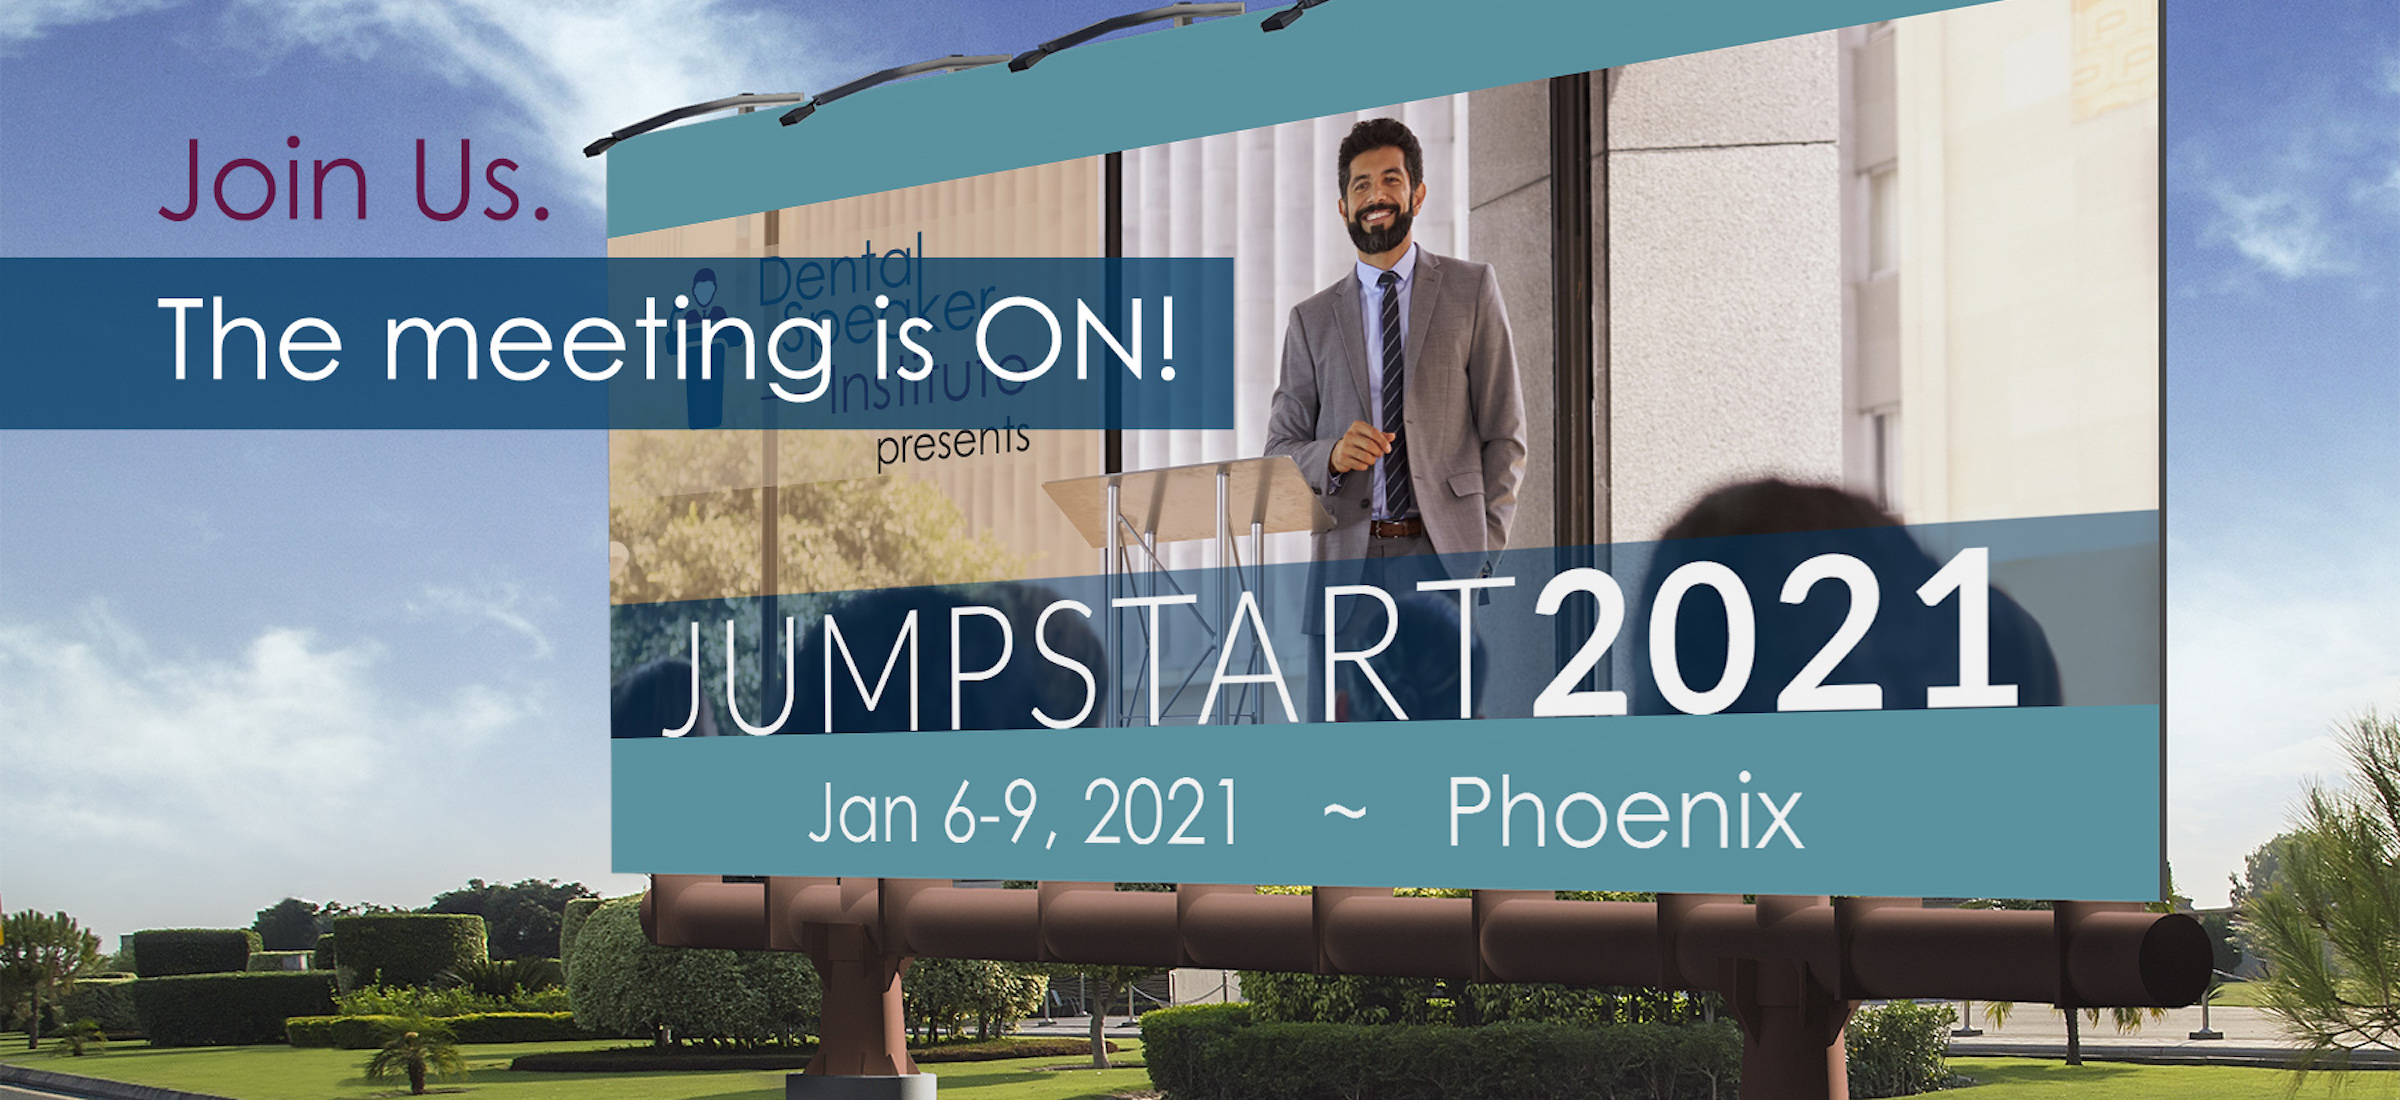 JUMPSTART2021 Meeting for dental speakers and consultants in Phoenix, AZ